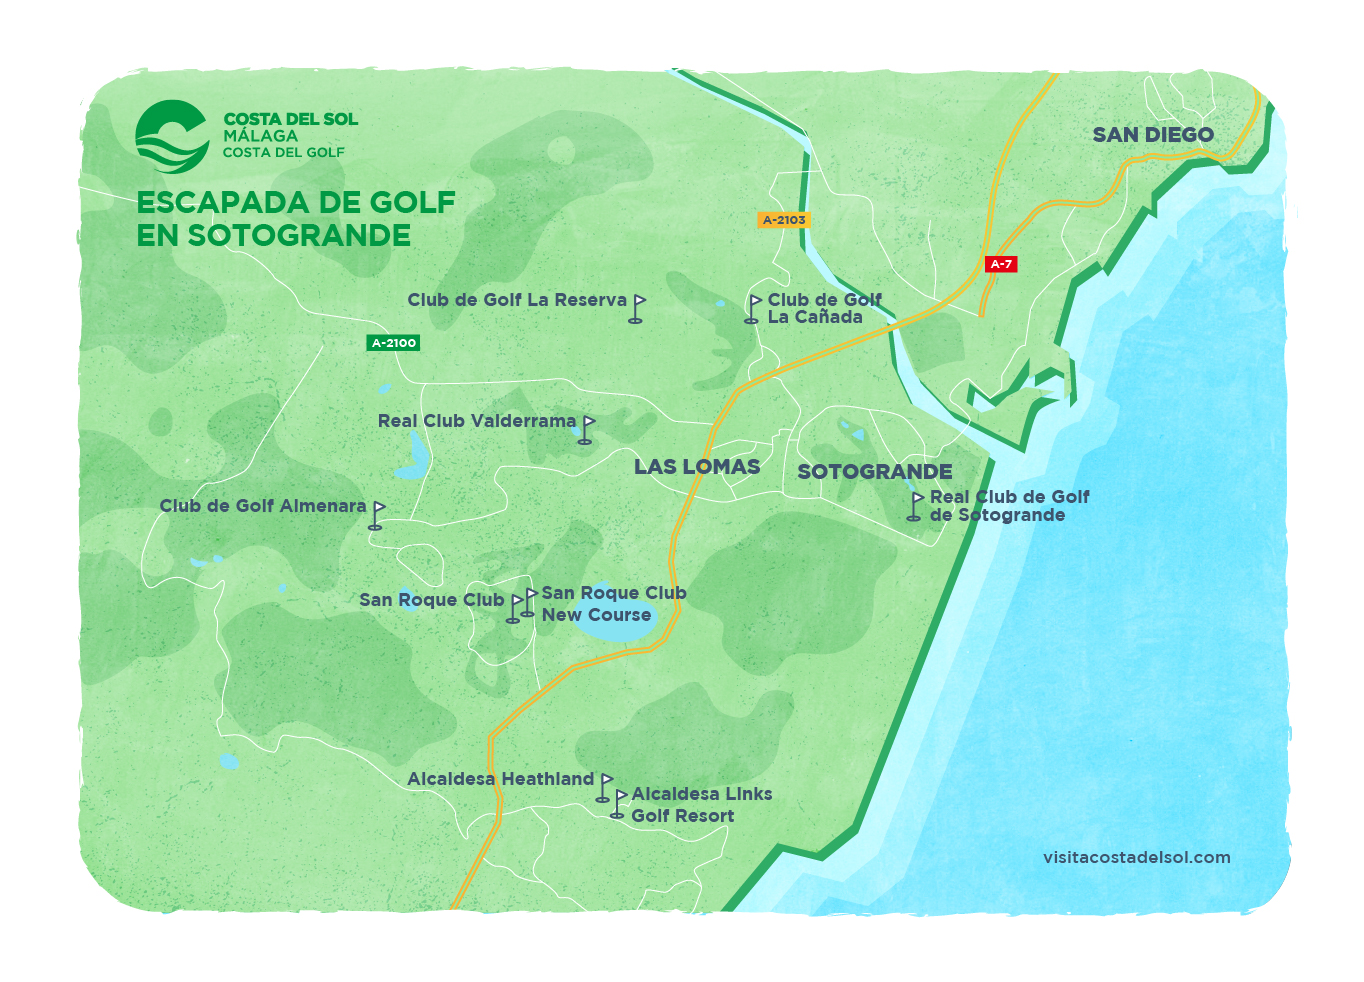 Escapada de golf en Sotogrande